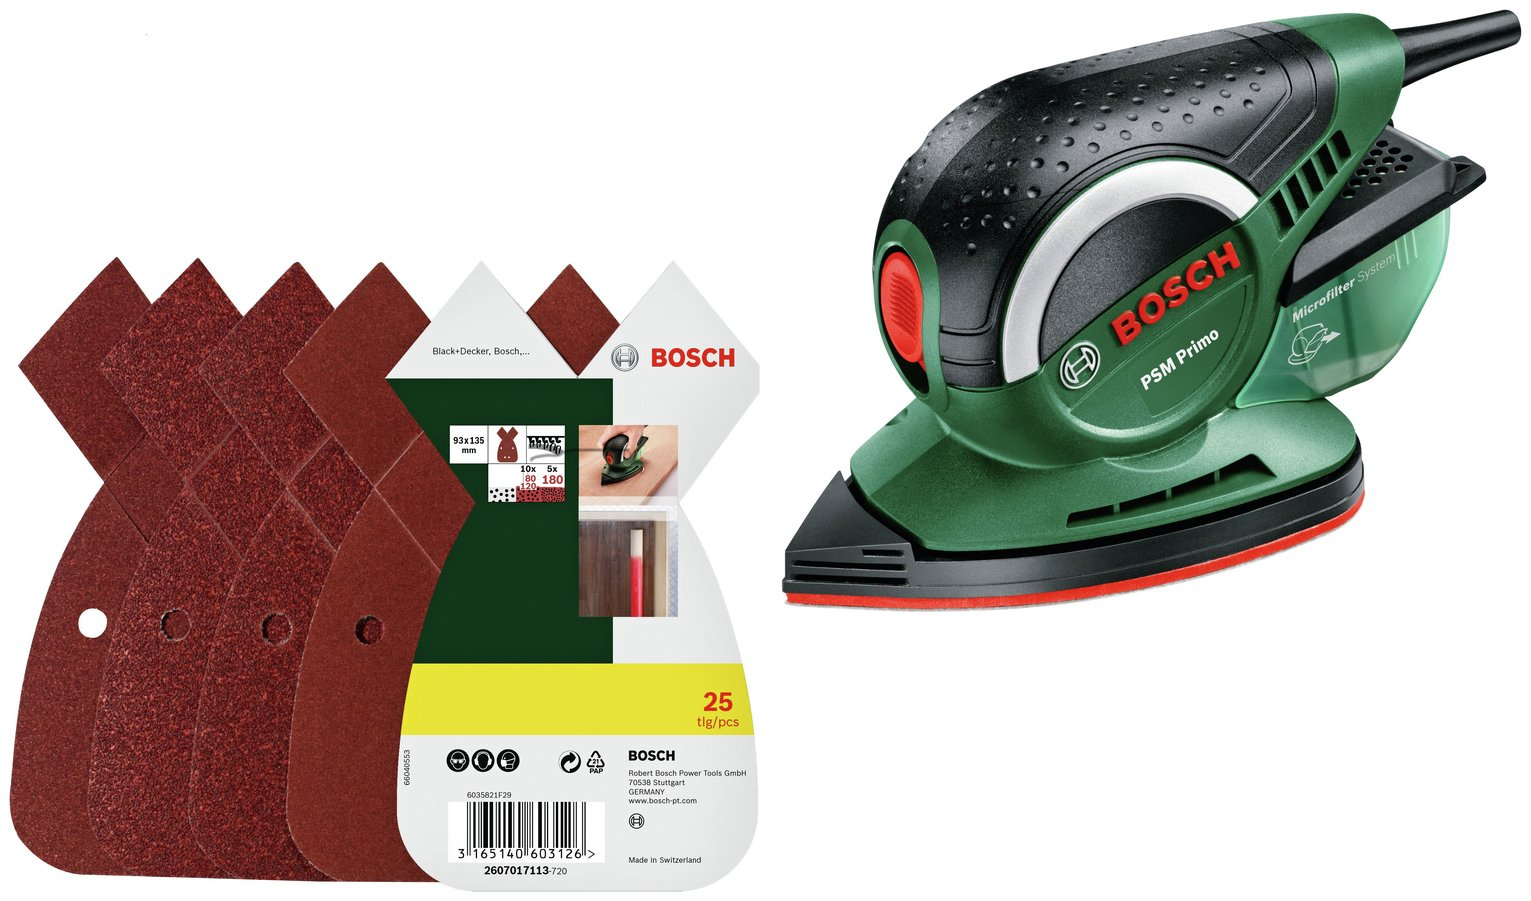 Bosch PSM Primo Detail Sander with 25 Sheets